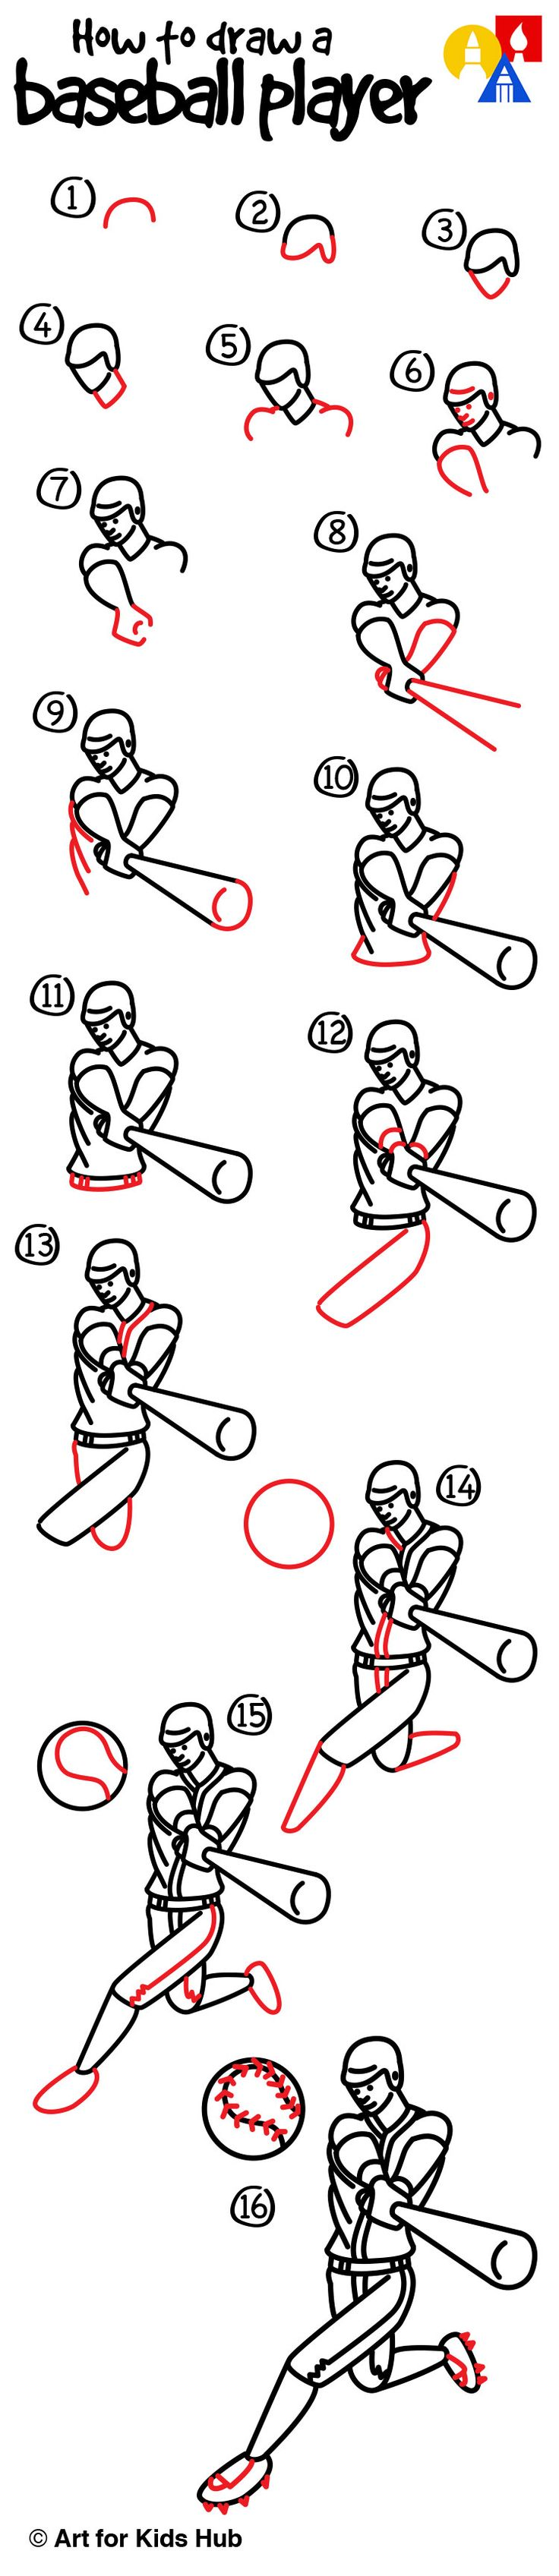 62 best afkh step by steps images on pinterest easy drawings how to draw a baseball player art for kids hub thecheapjerseys Choice Image